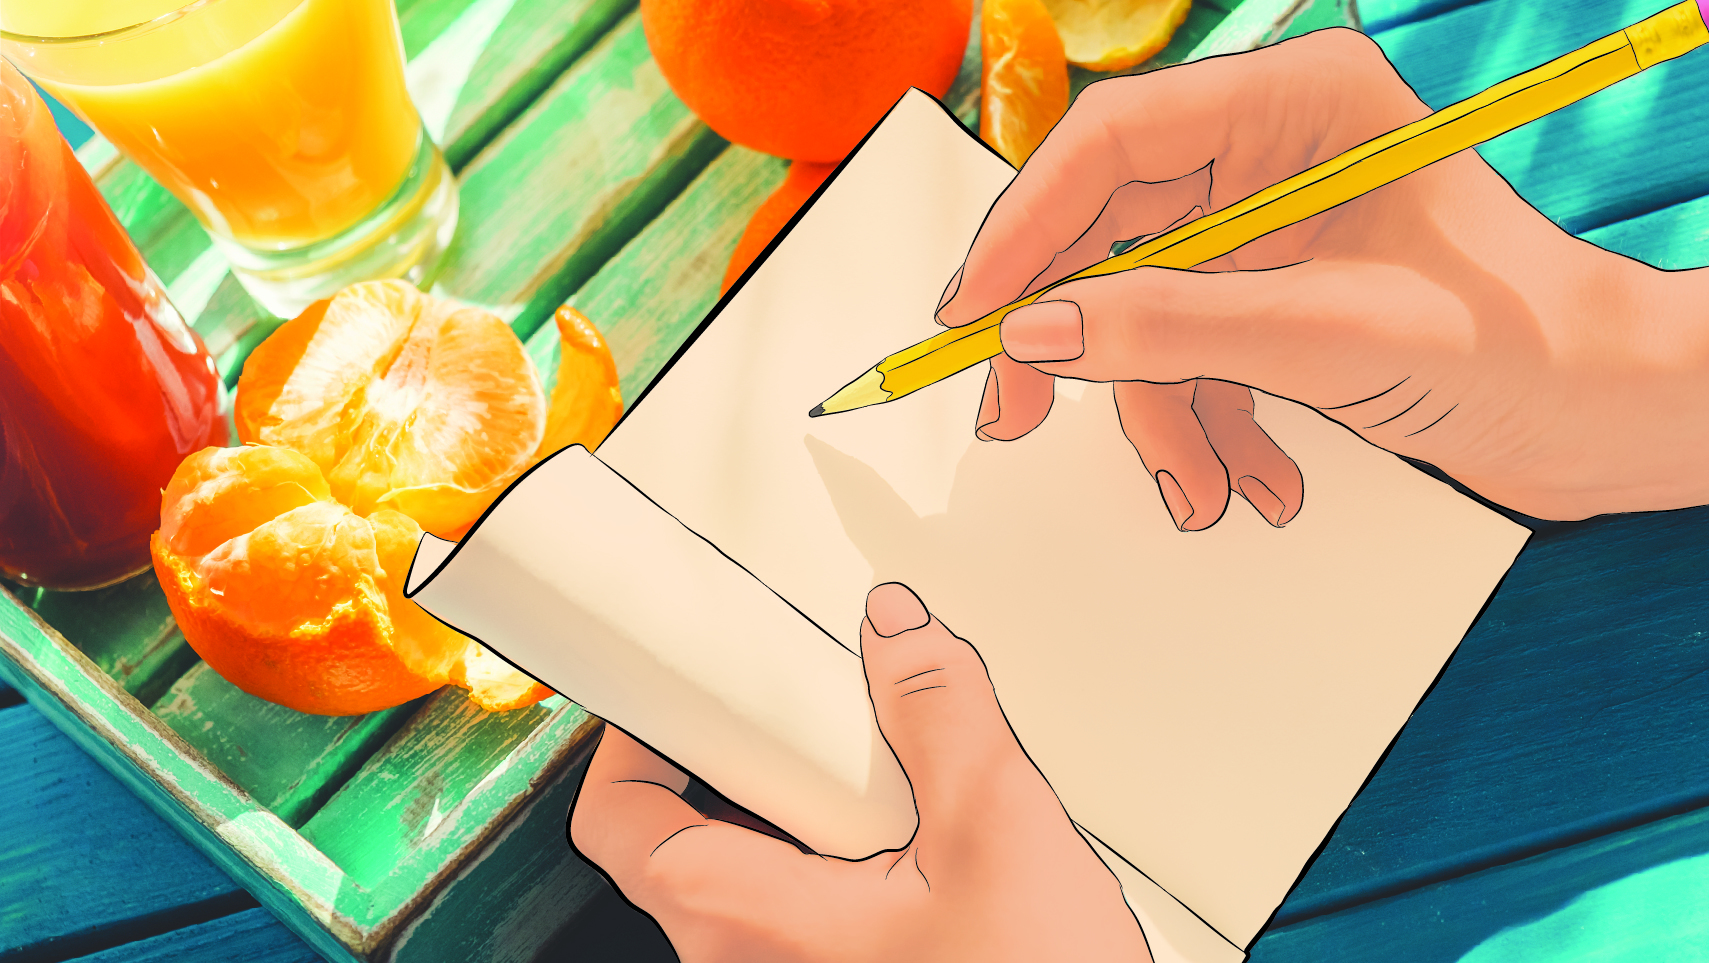 A person writing in a journal by a table with food on it.